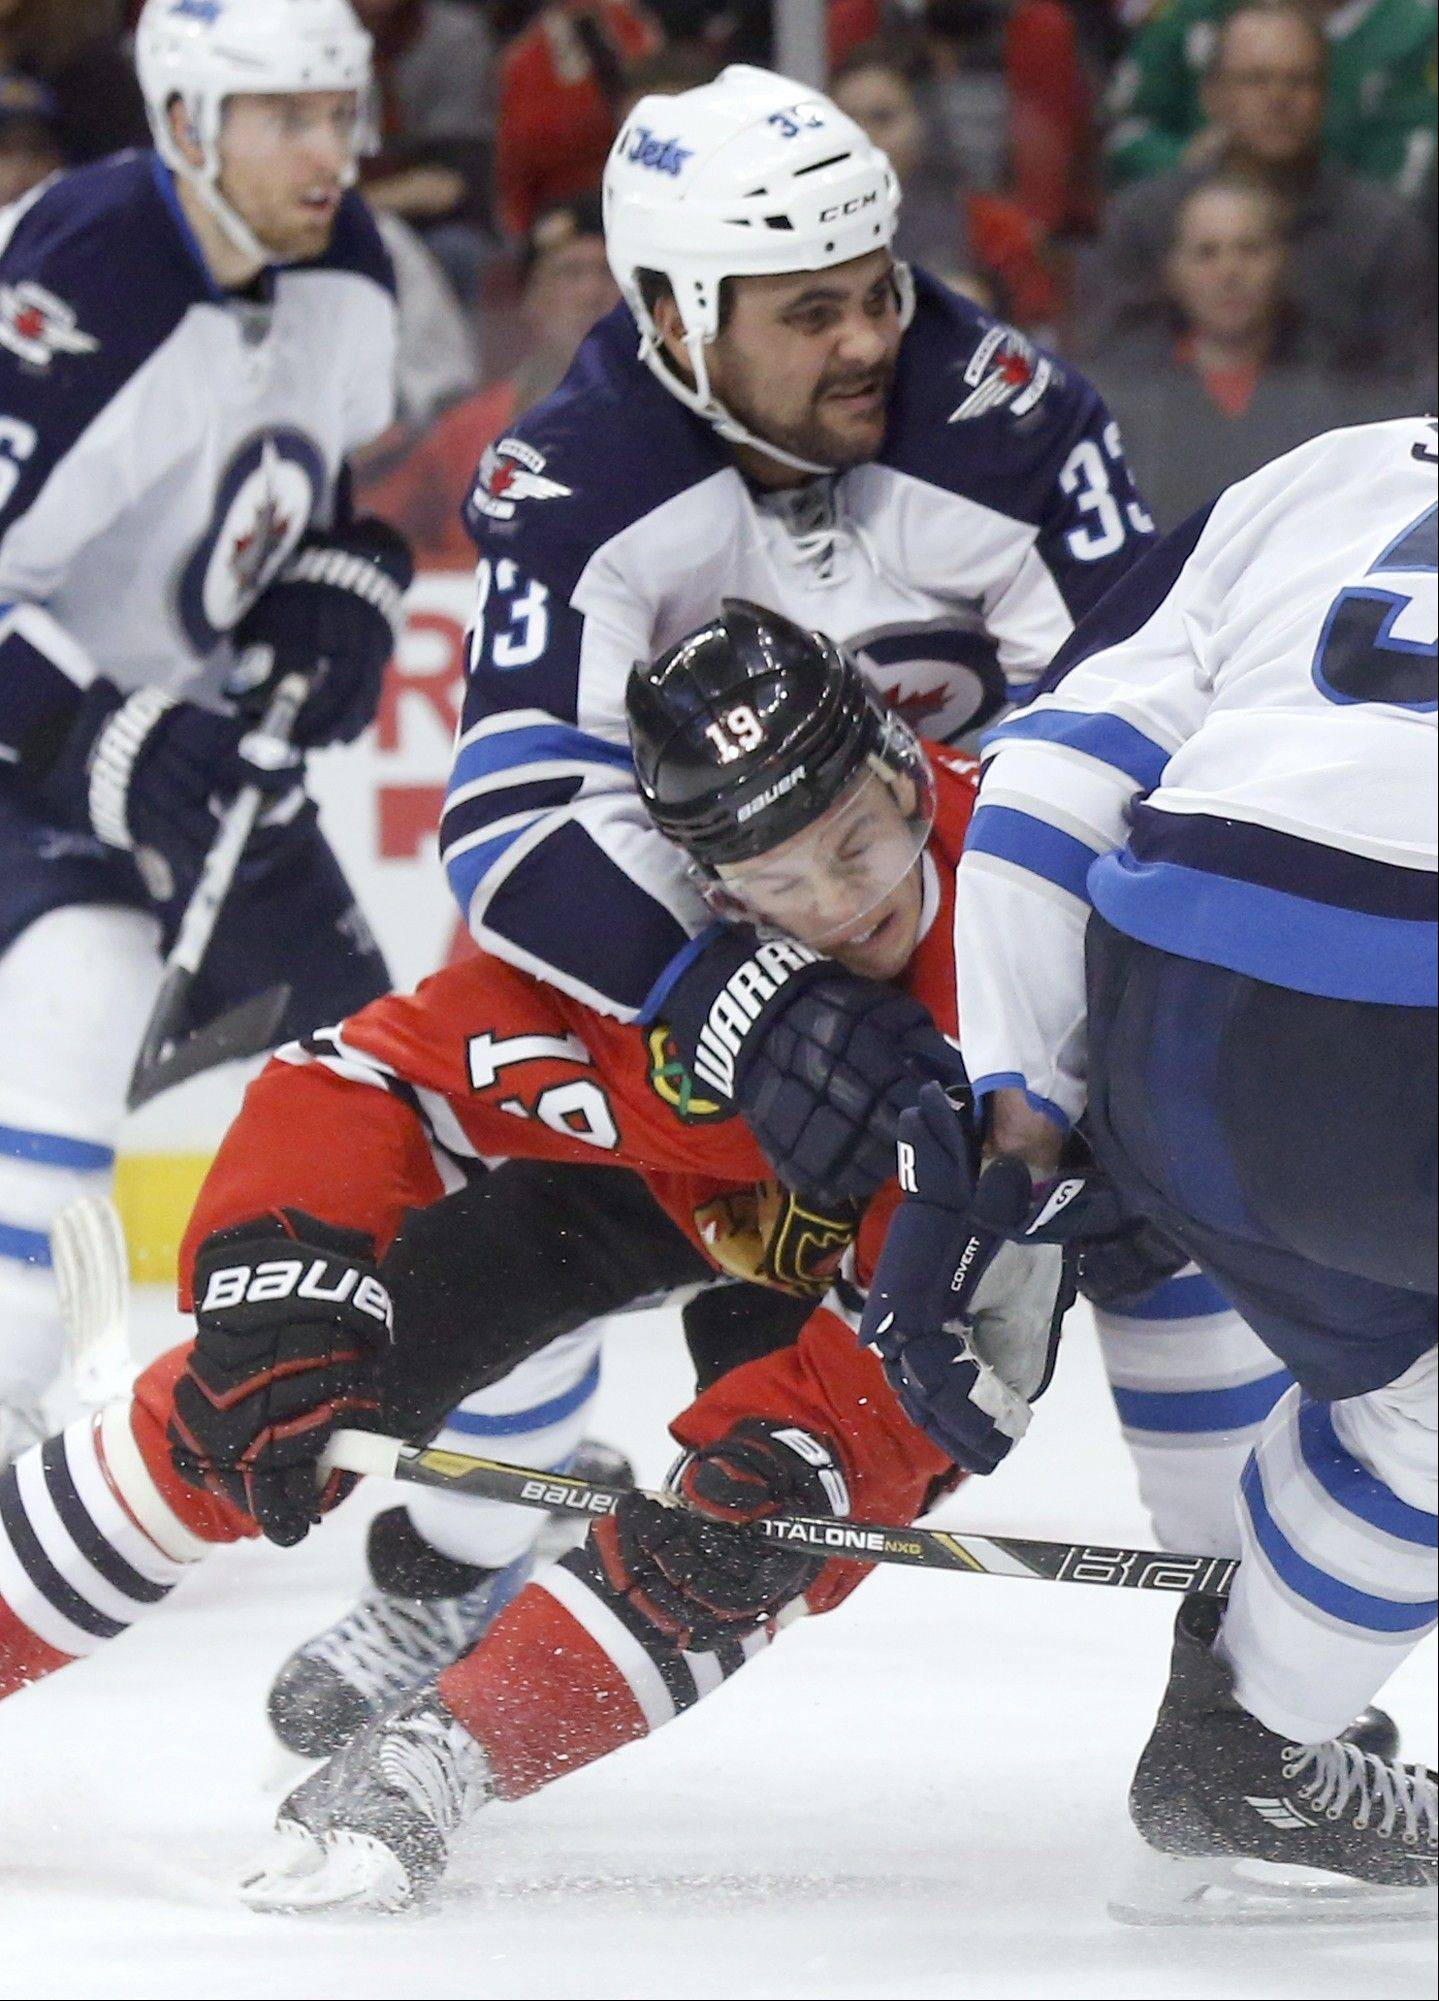 Winnipeg Jets defenseman Dustin Byfuglien (33) takes Chicago Blackhawks center Jonathan Toews (19) down after Toews' shot on goal during the second period of an NHL hockey game Sunday, Jan. 26, 2014, in Chicago.